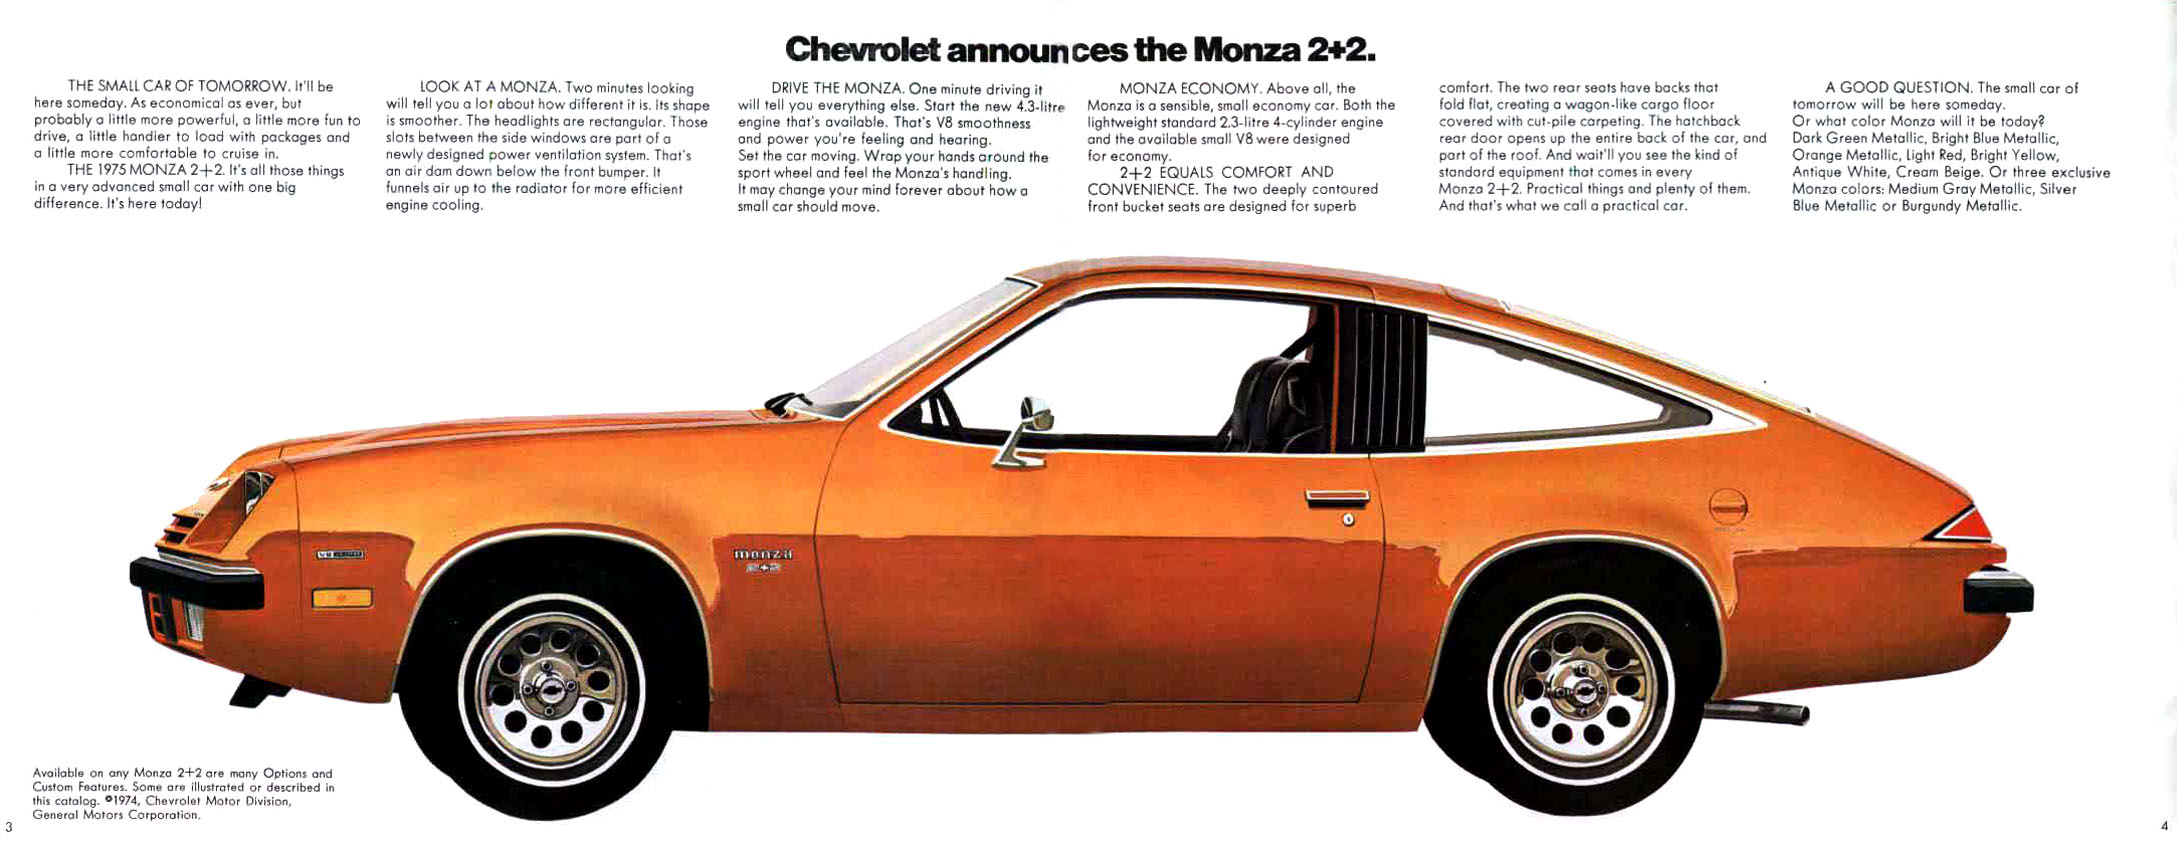 The almost muscle car chevy monza 1975 1980 epautos the 70s and early 80s were weird years for the car industry the muscle car era of the 60s was fading fast but the fumes still lingered what would fandeluxe Image collections